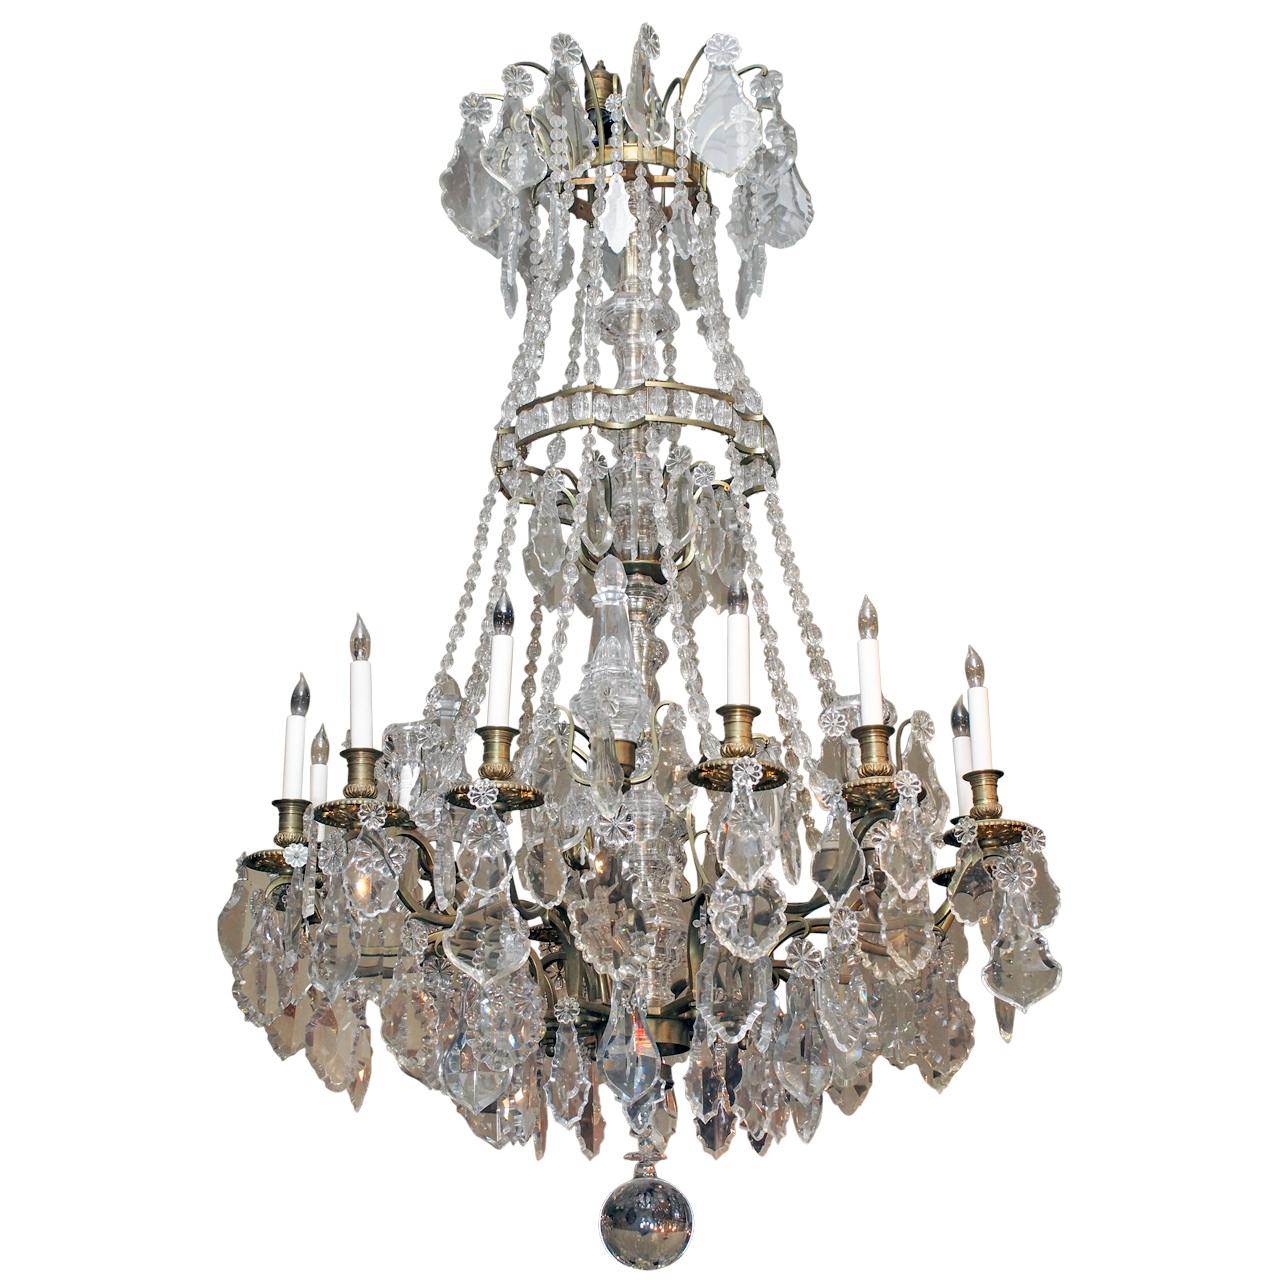 Antique French Louis XVI Baccarat Crystal Chandelier - Antique French Louis XVI Baccarat Crystal Chandelier Keils